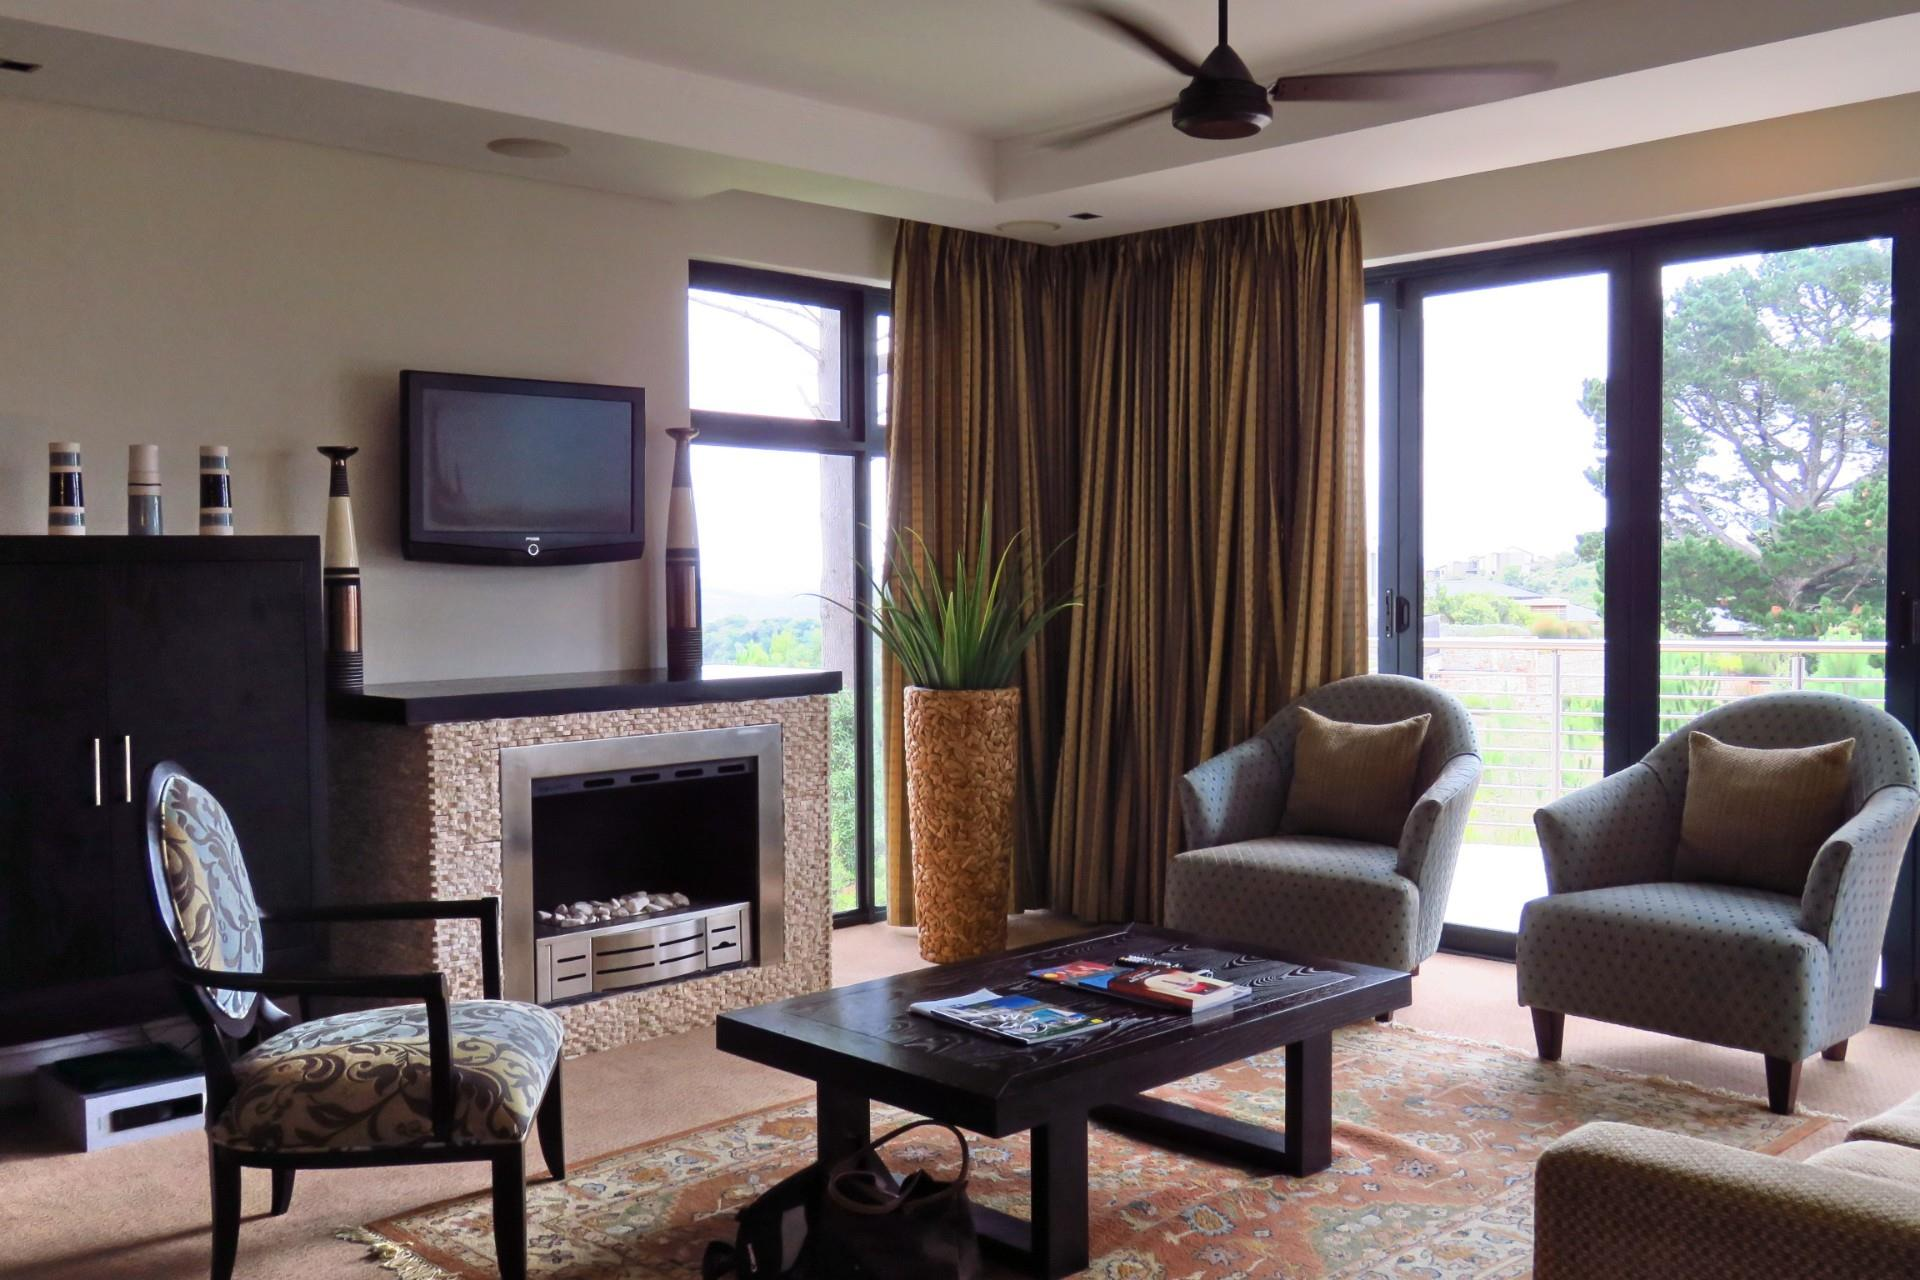 2 Bedroom Apartment For Sale in Simola